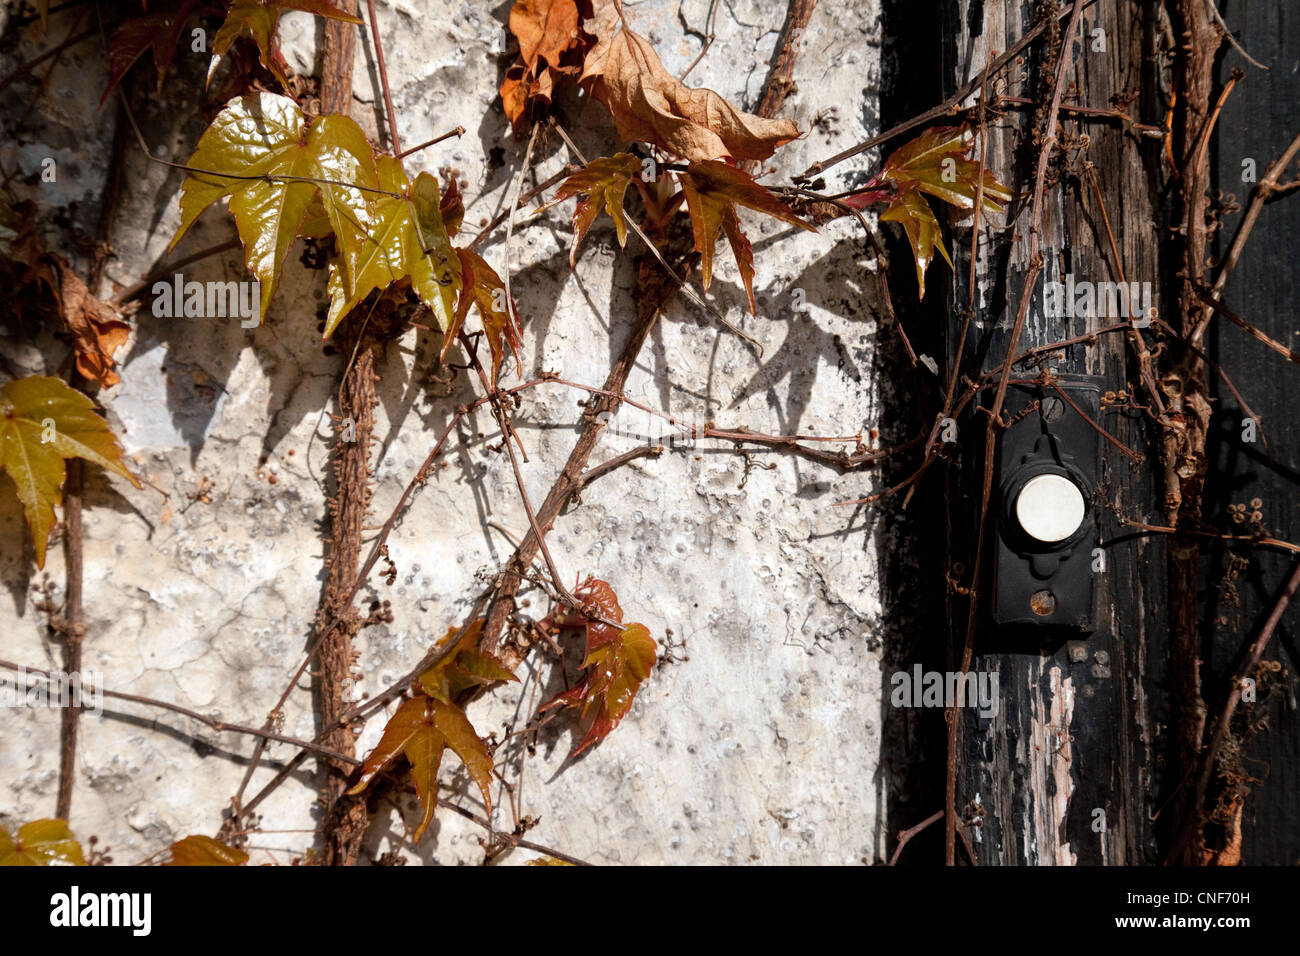 Ivy growing on the wall of a derelict building with the doorbell, Suffolk UK - Stock Image